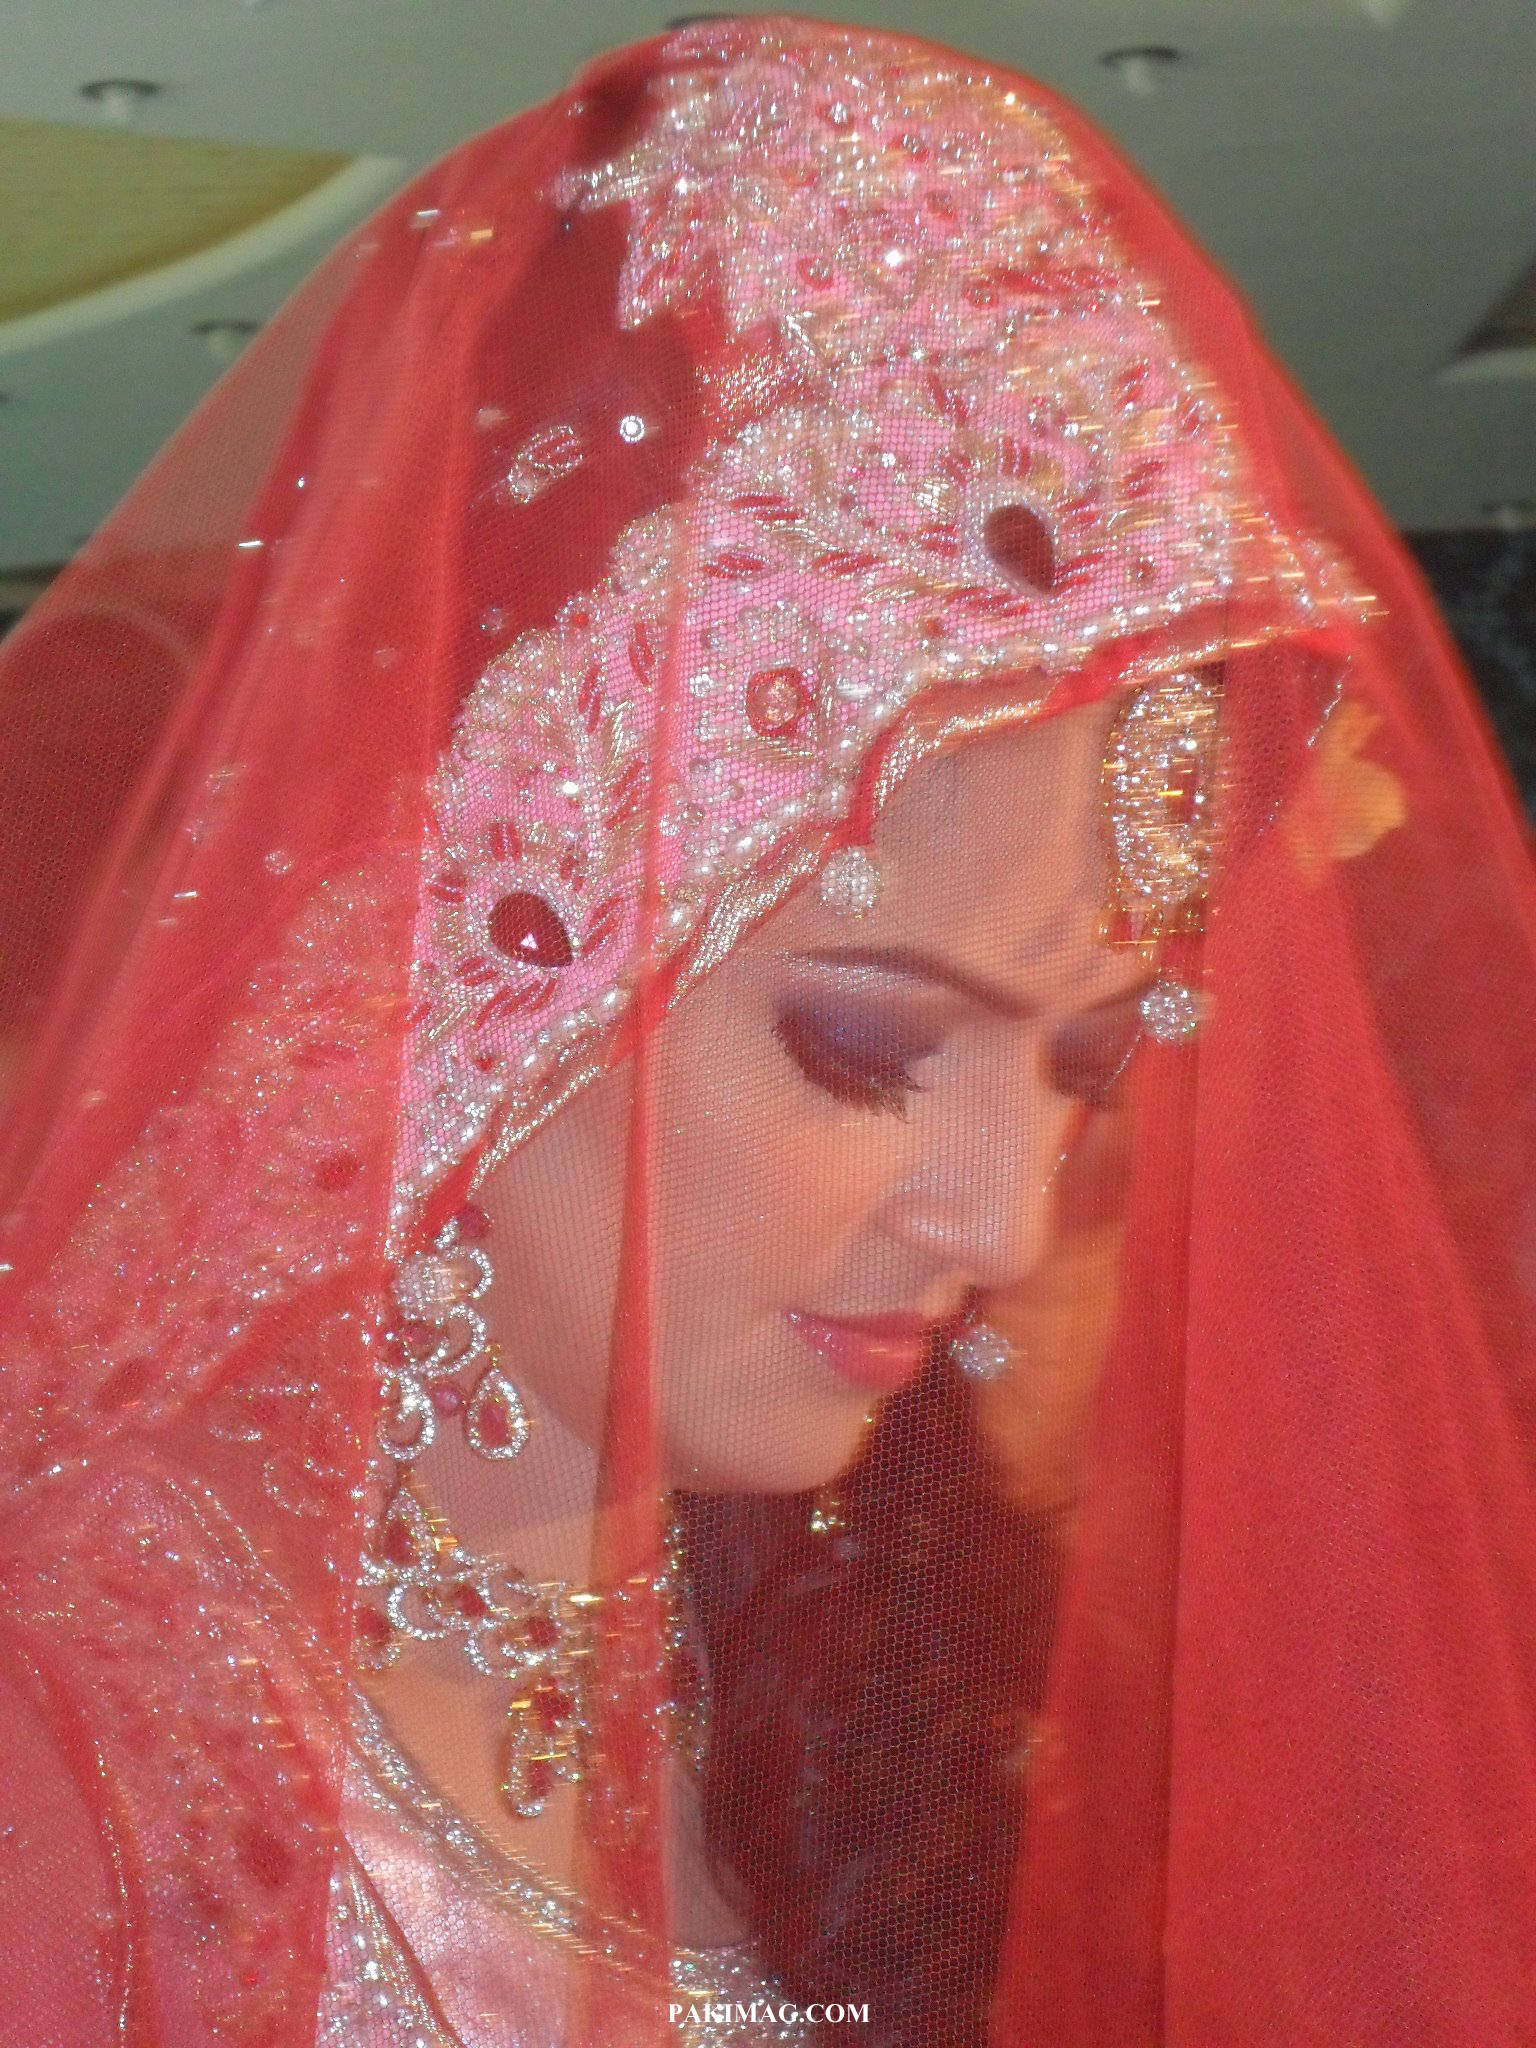 Pictures of ayesha baksh